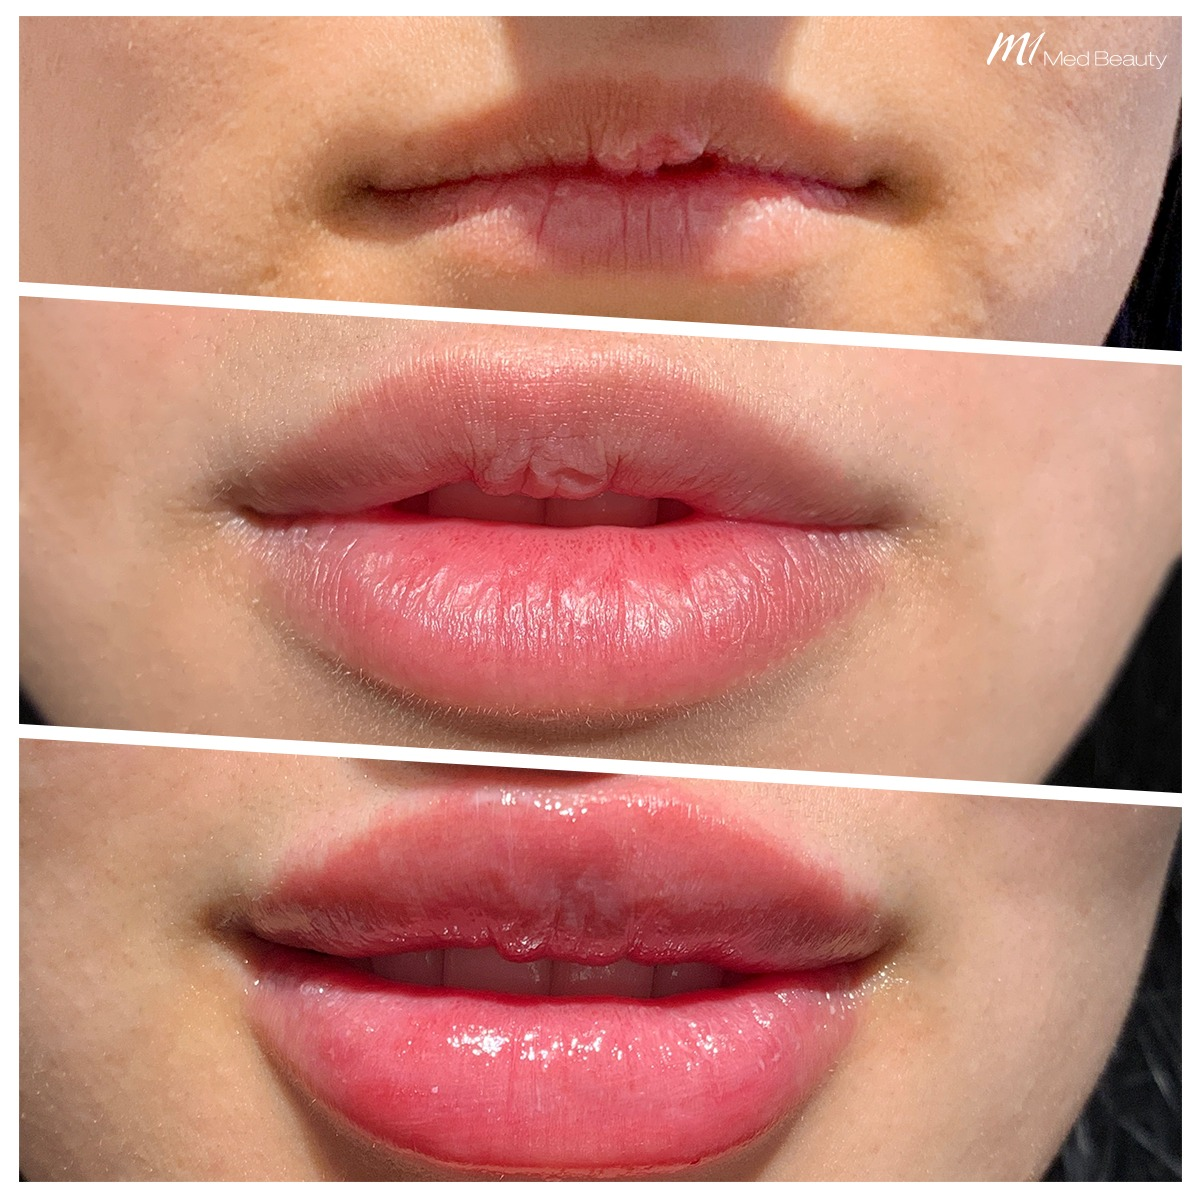 Lip fillers at M1 Med Beauty before and after 02